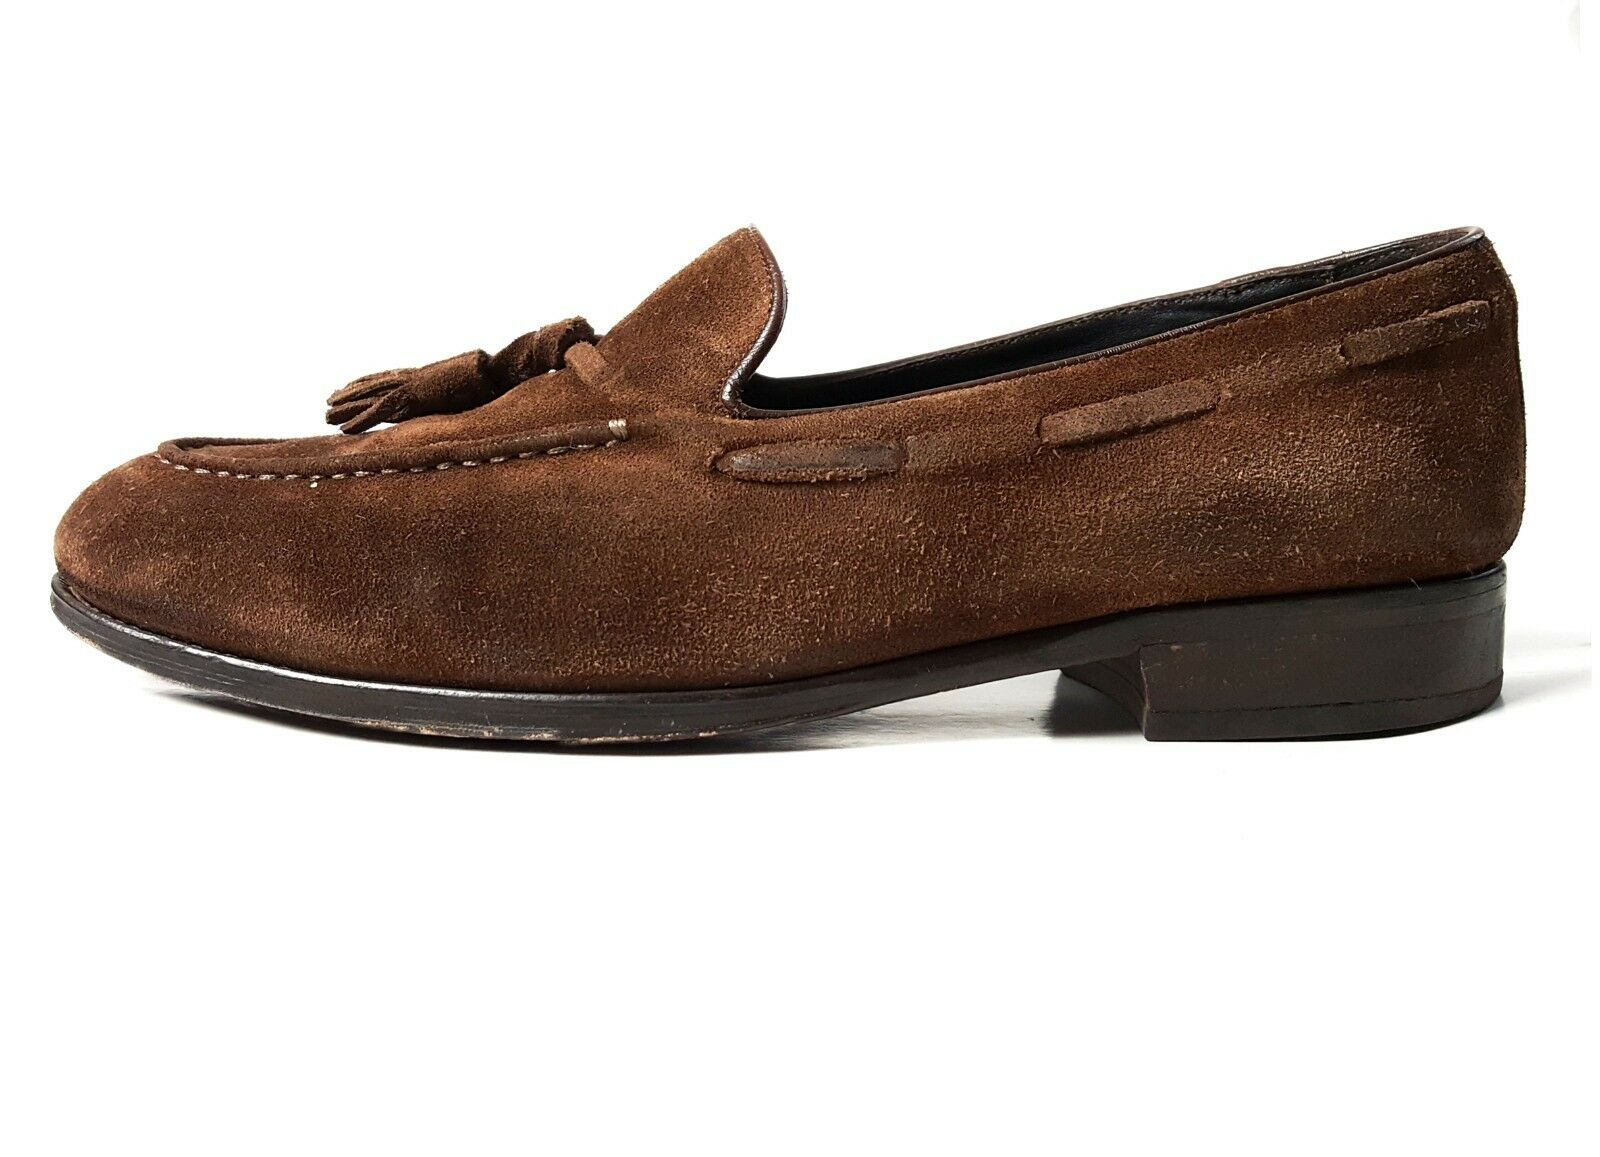 SUITSUPPLY 9 US Leather Brown Tassel Loafers MADE IN ITALY